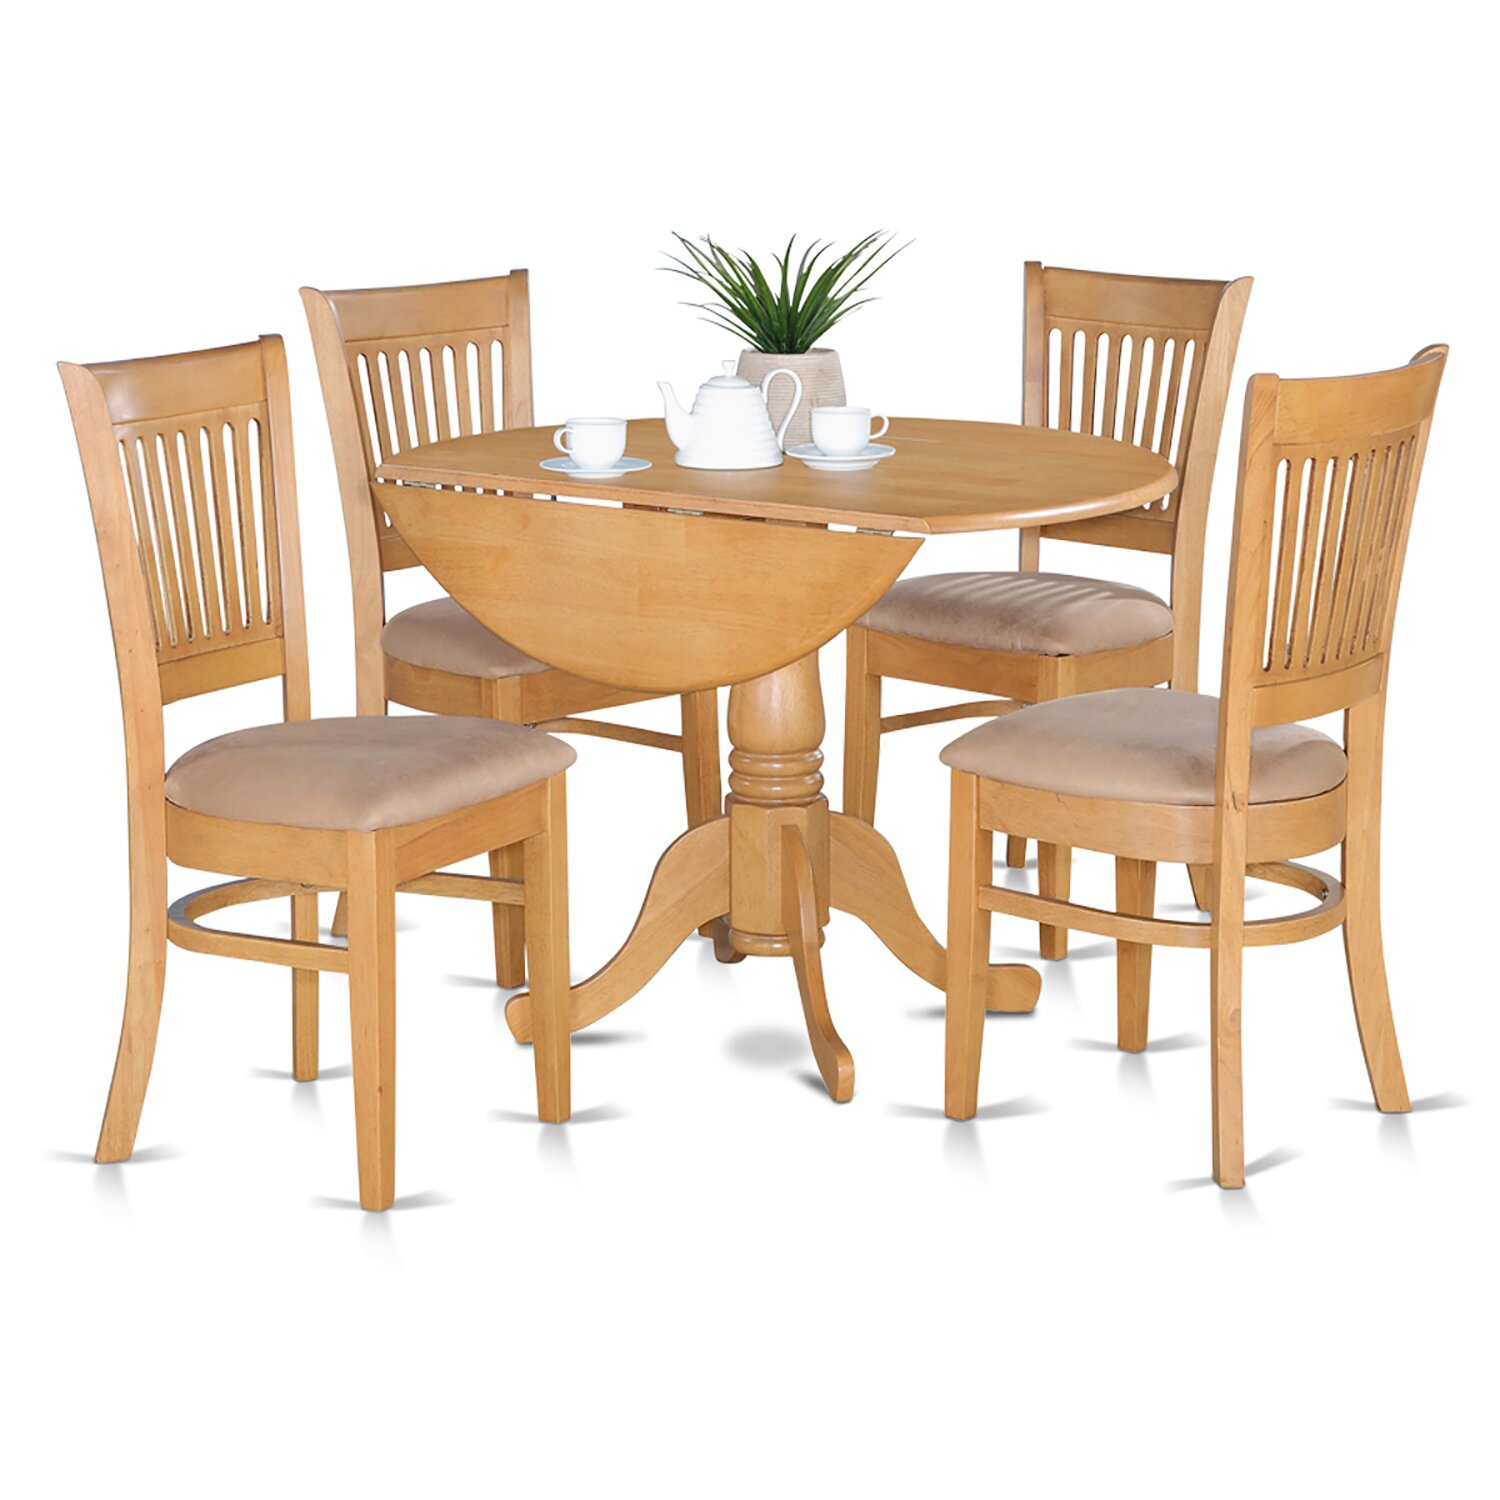 East west dublin 5 piece dining set reviews wayfair for Small table and 4 chair set